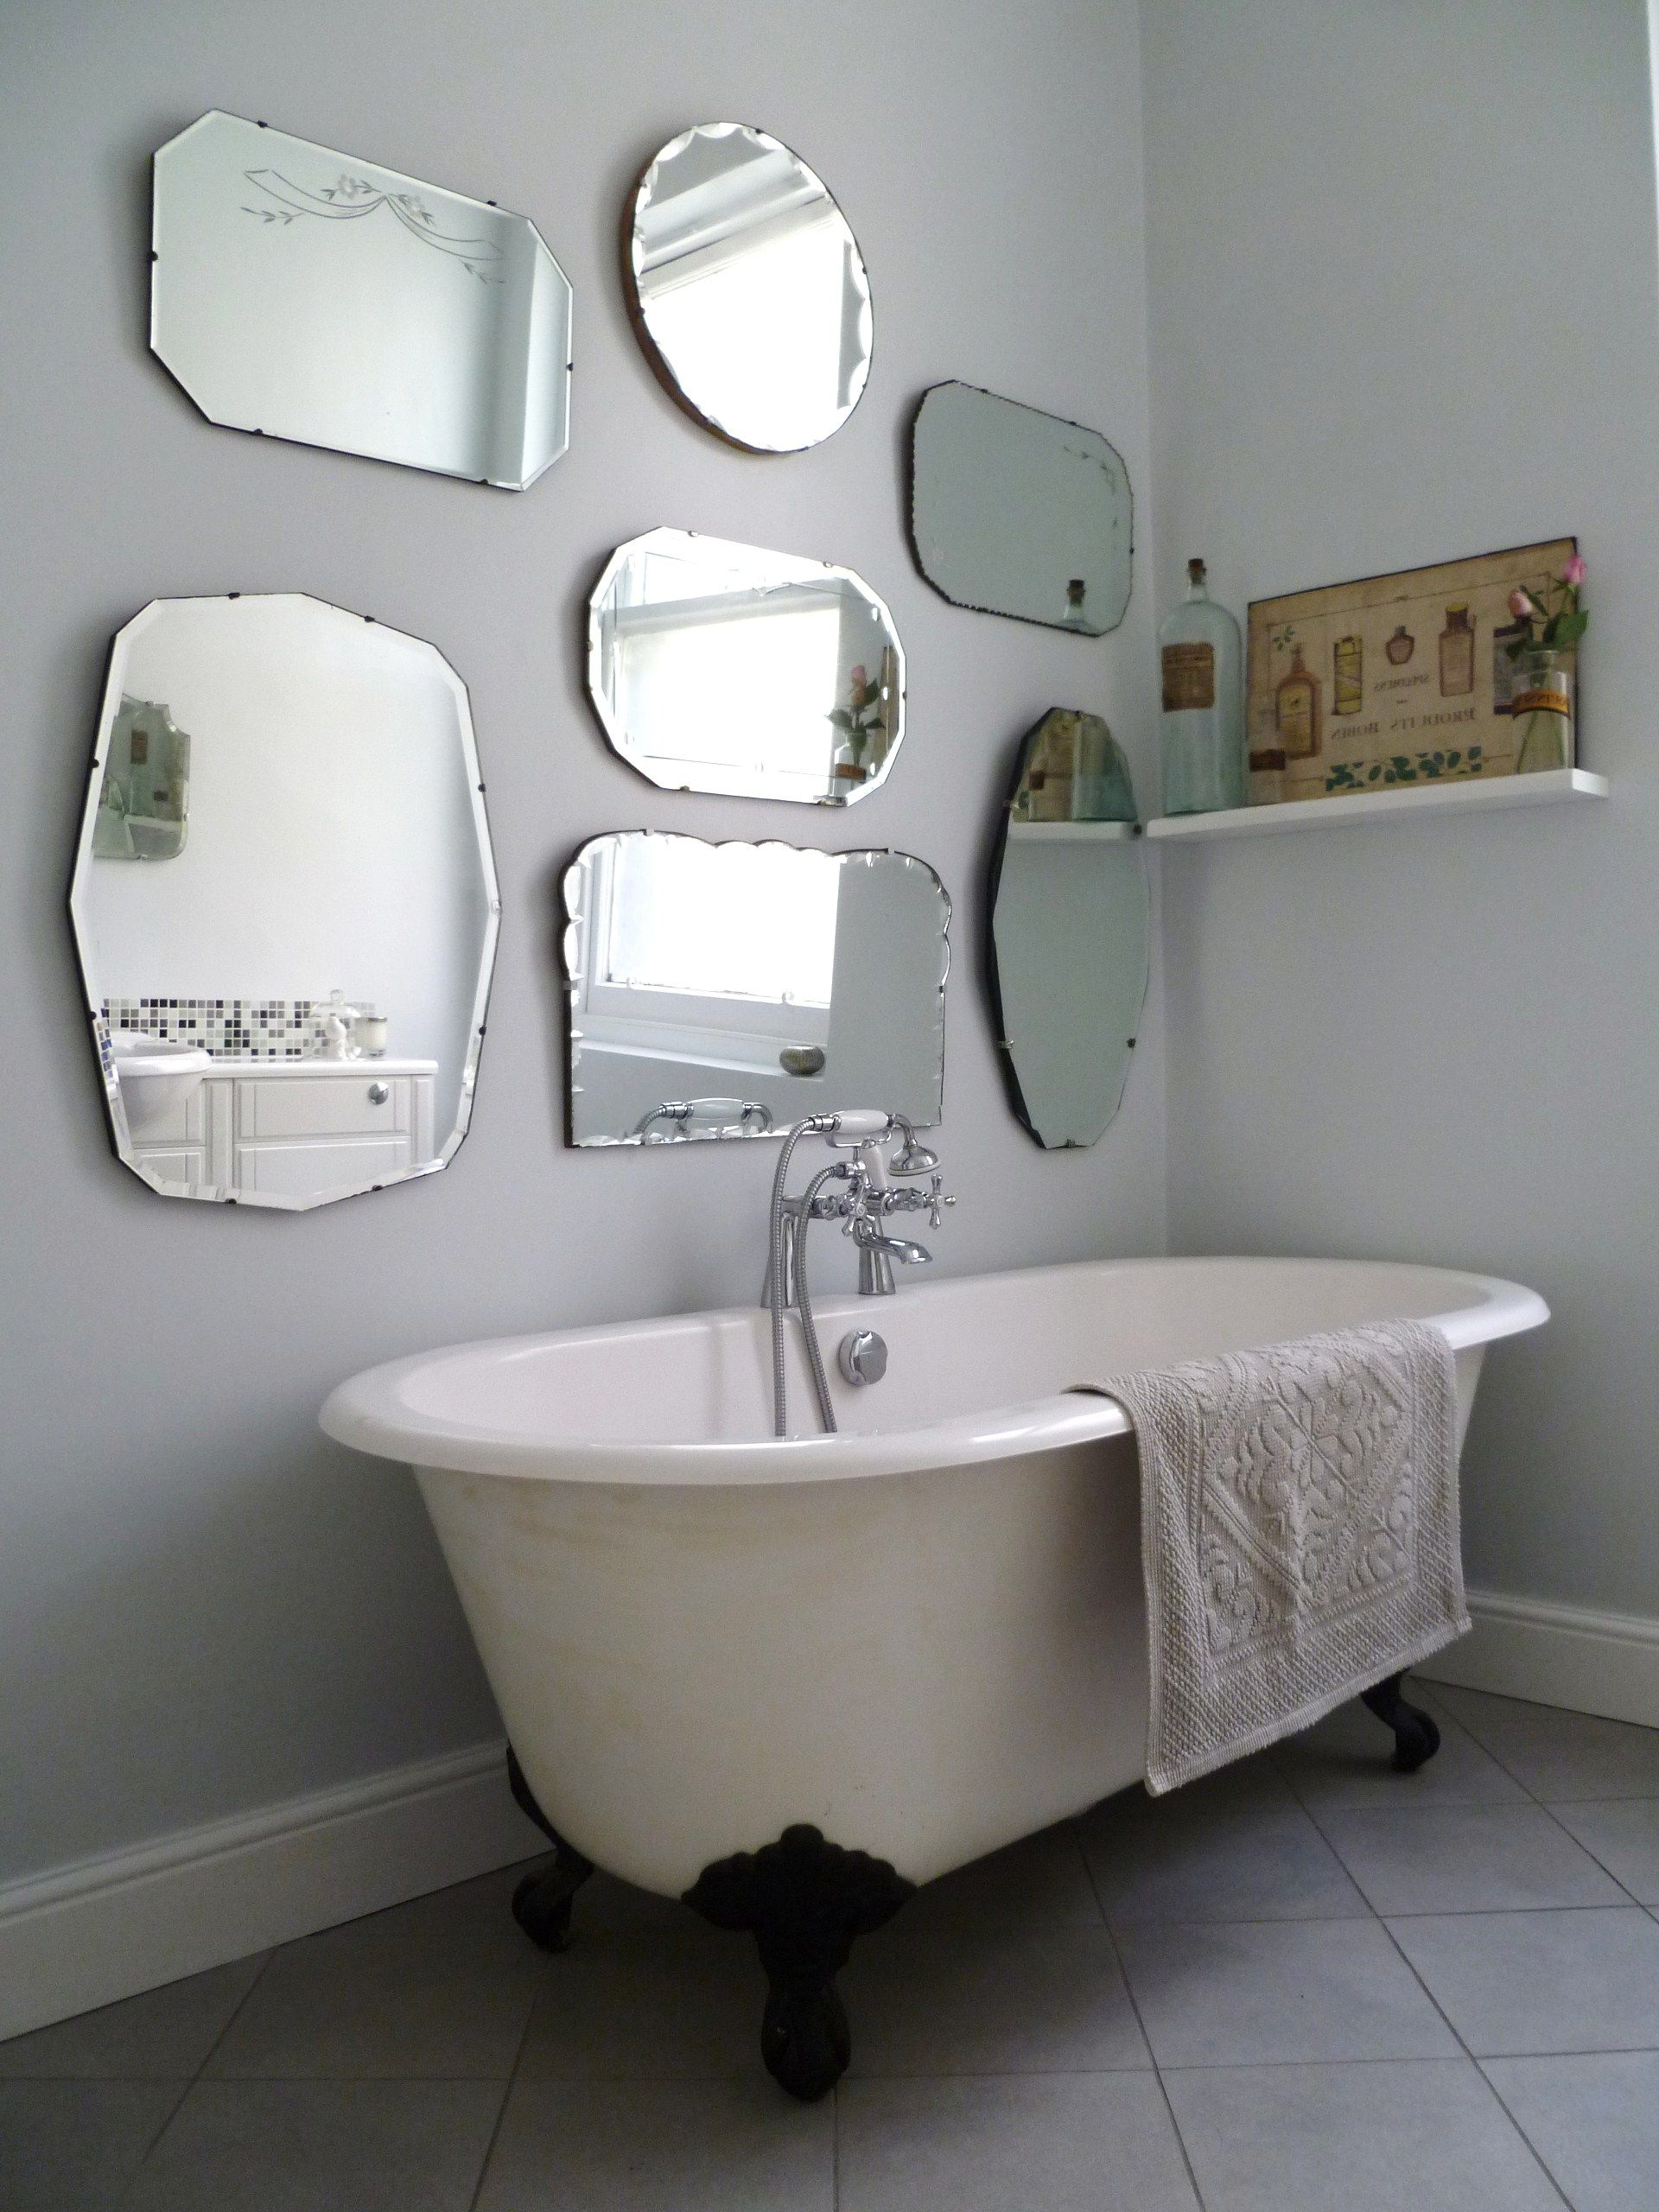 Unframed Wall Mirrors In 2019 How To Hang A Display Of Vintage Mirrors (View 14 of 20)